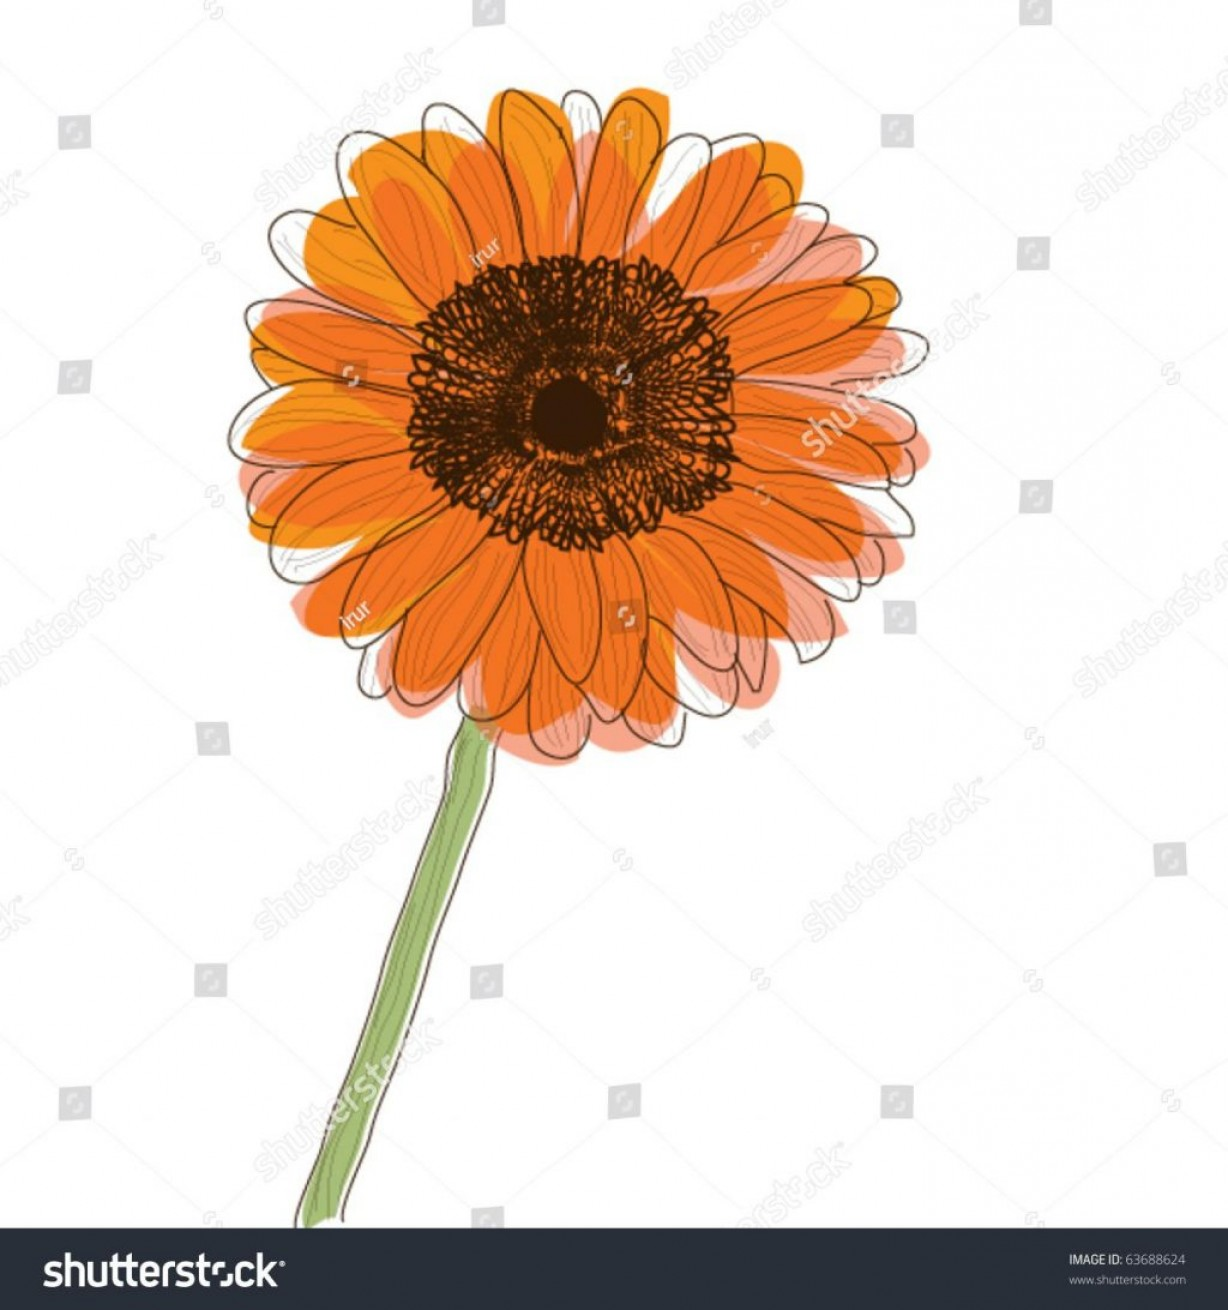 Orange Gerber Daisy Vector: Stylish Best Free Stock Vector Orange Gerbera Daisy Flower Retro Style Drawing